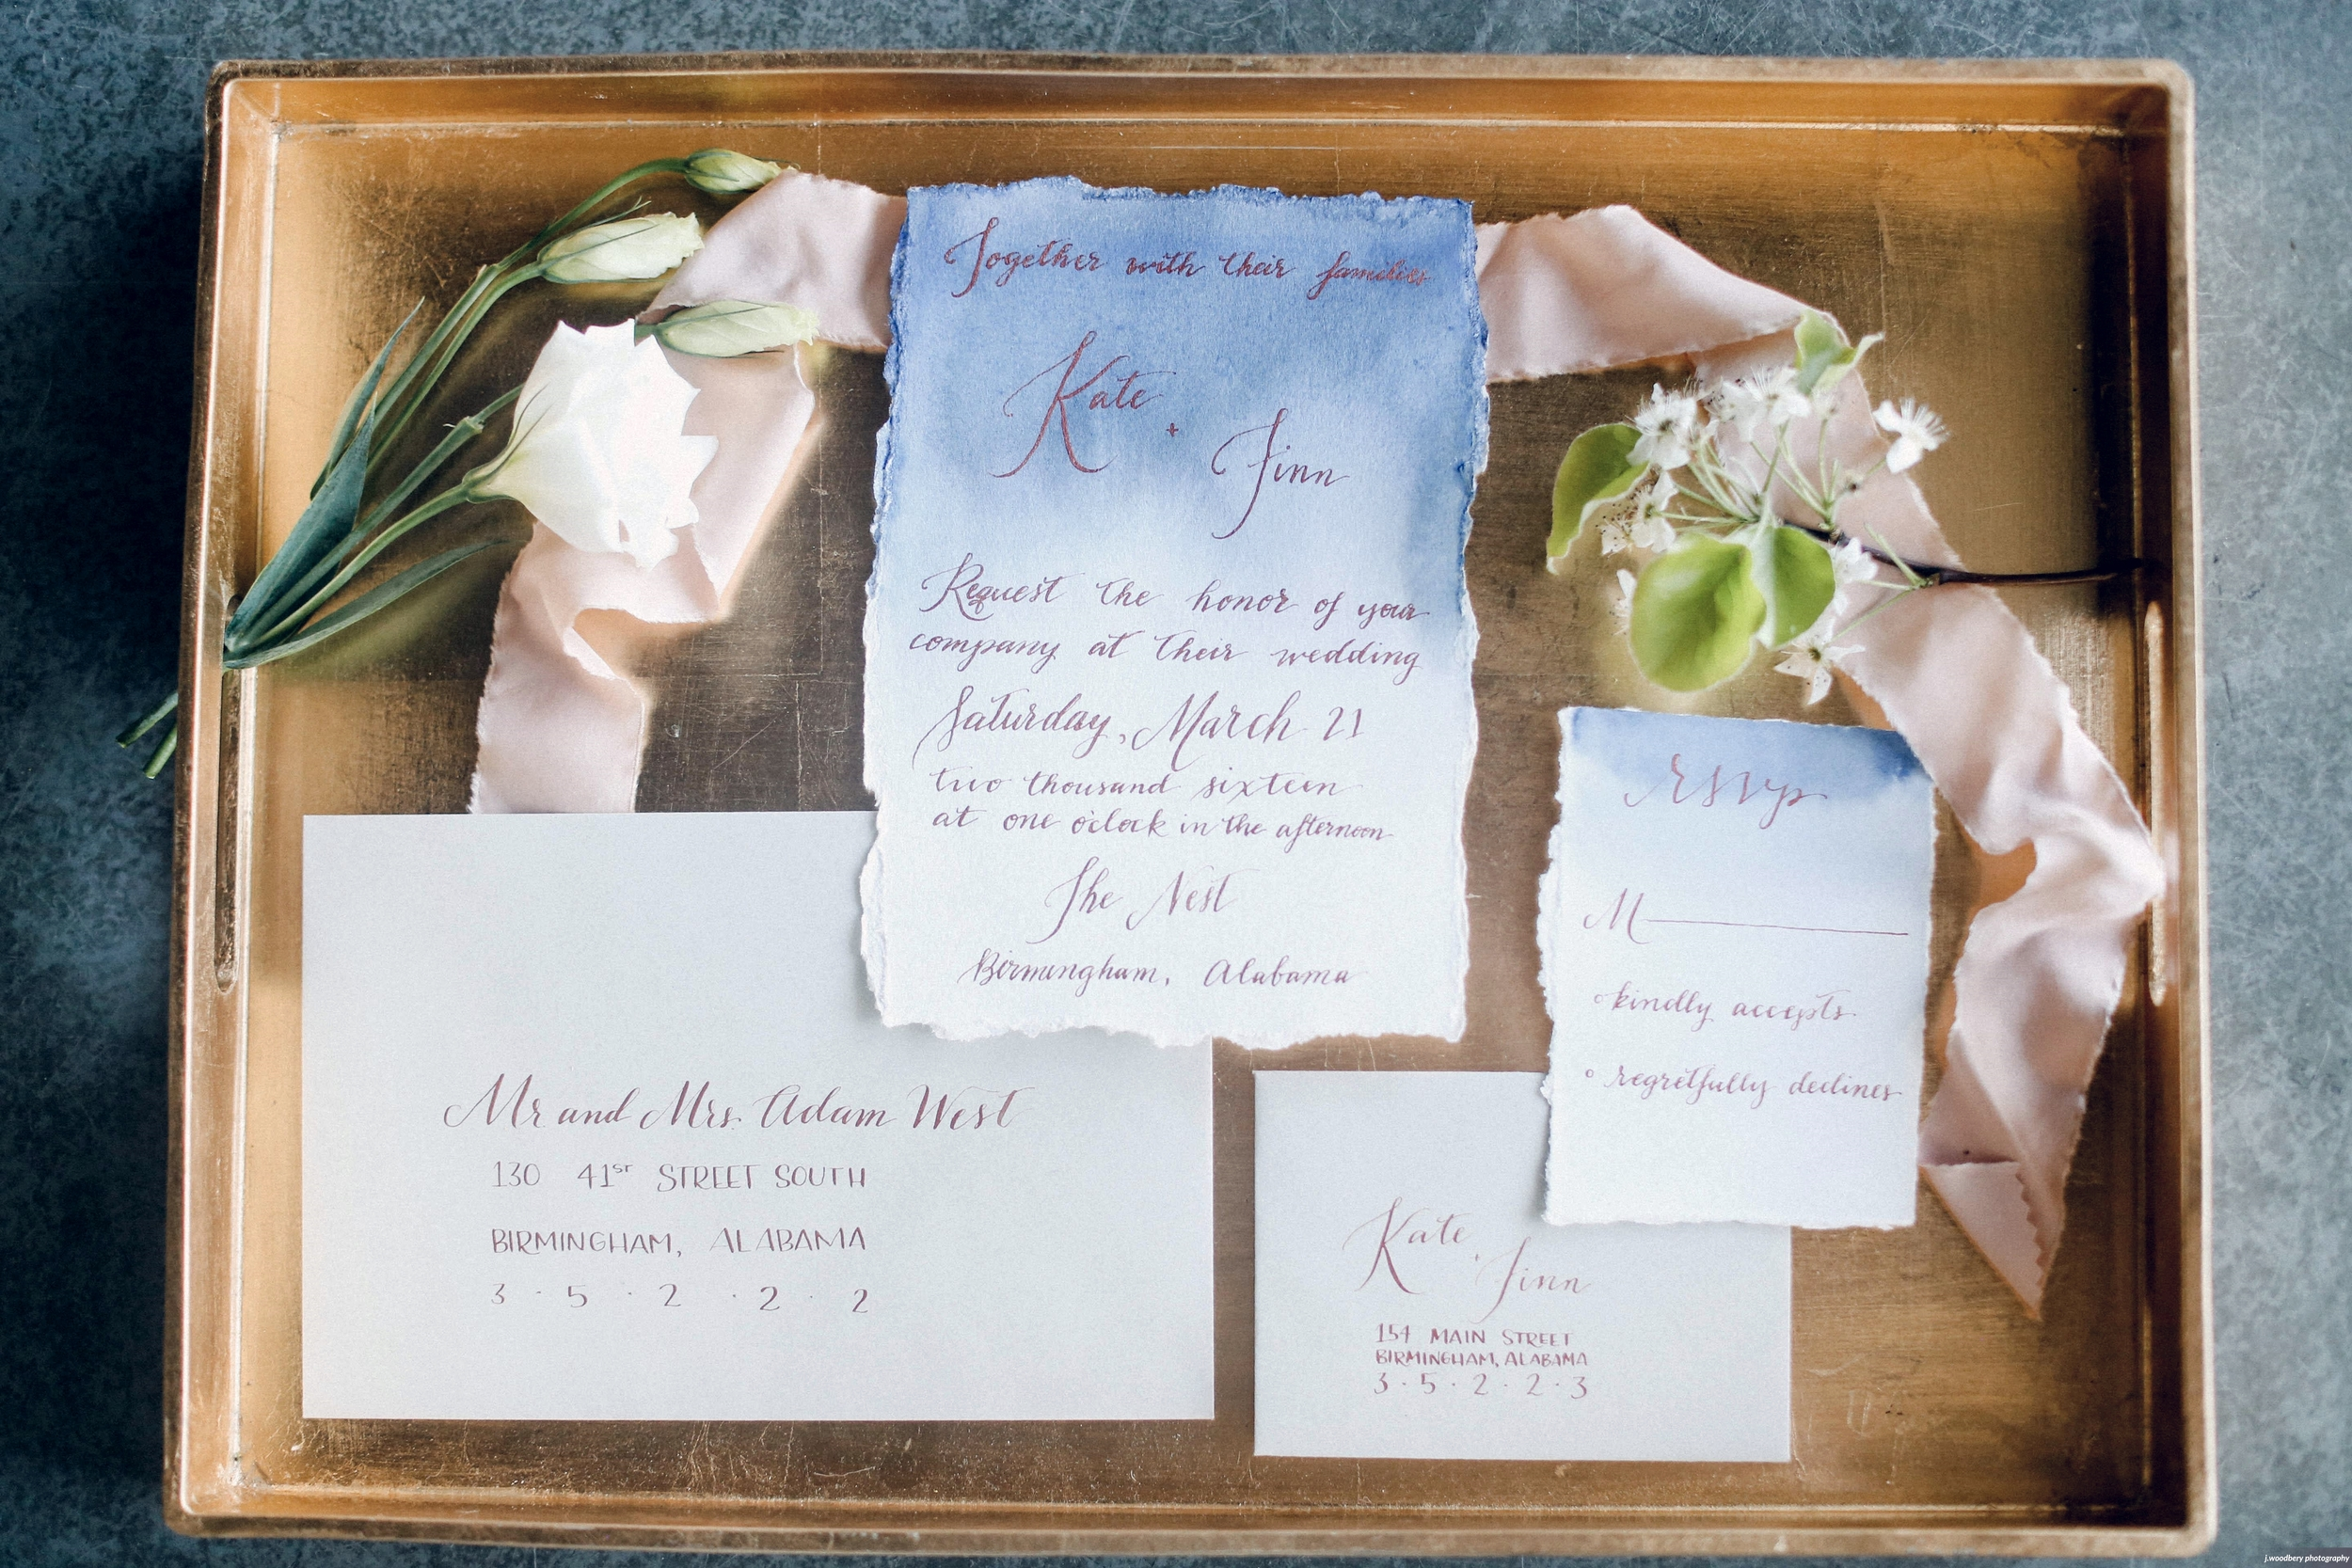 Modern romantic blue watercolor wash wedding invitation suite with moody blue and copper calligraphy -Photograph by  Jennifer Woodbery Photography